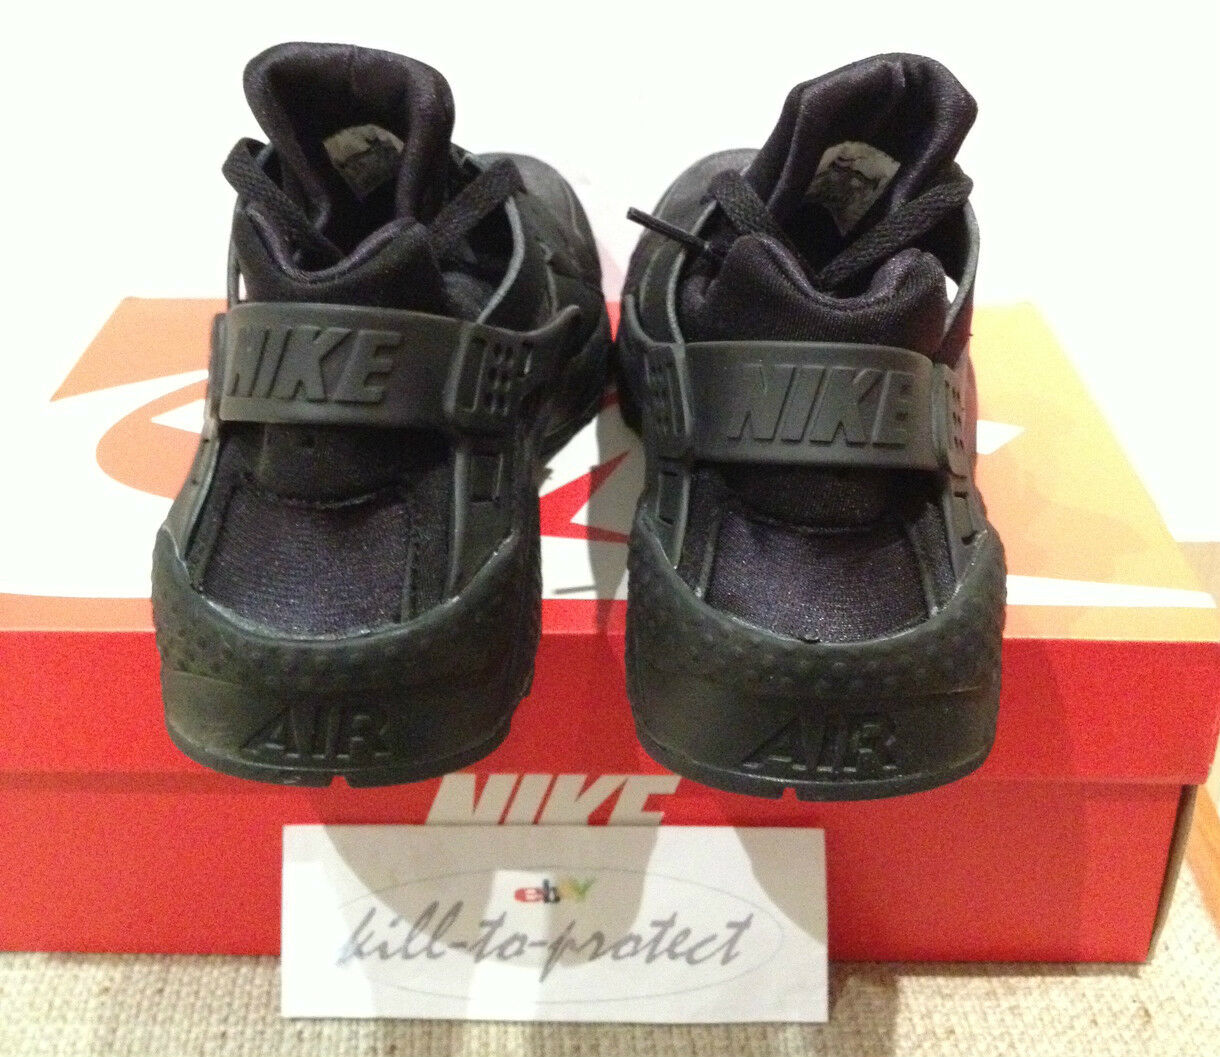 NIKE HUARACHE TRIPLE ALL BLACK Sz US UK 7 7 UK 8 9 10 11 12 Weiß OG 318429-003 2014 27f7ed